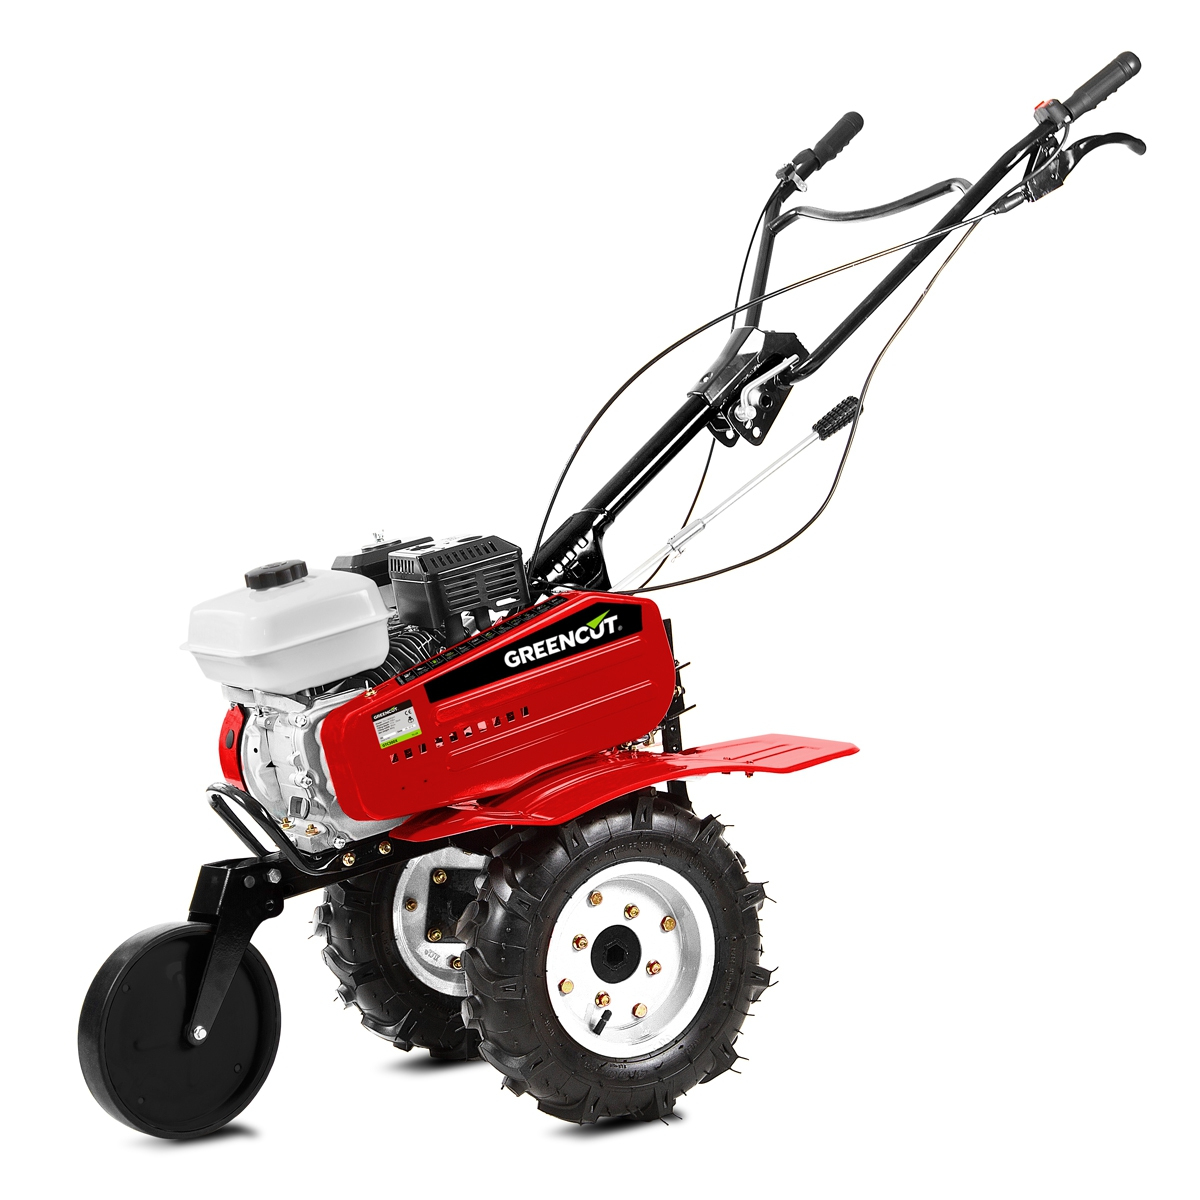 Cultivator Gasoline 7sv Width 85cm 3 Gears With Wheels And Asurcador-GREENCUT